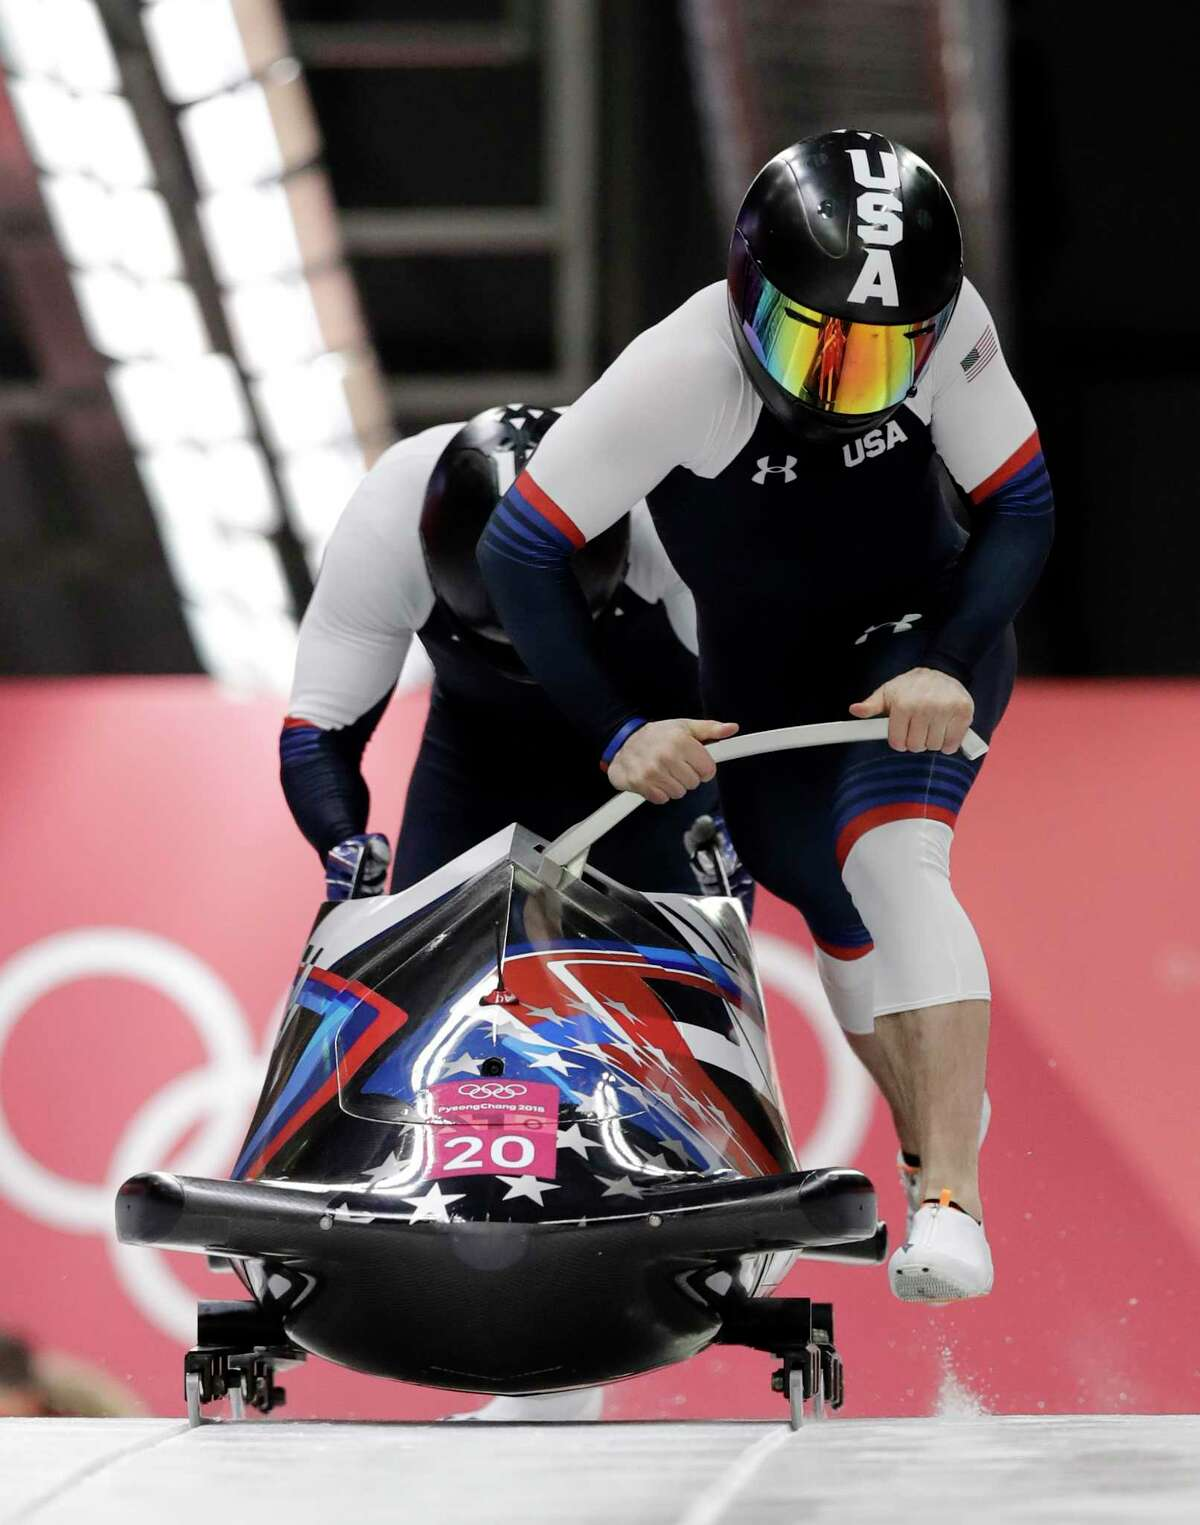 Driver Codie Bascue and Samuel McGuffie of the United States starts their third heat during the two-man bobsled final at the 2018 Winter Olympics in Pyeongchang, South Korea, Monday, Feb. 19, 2018. (AP Photo/Wong Maye-E)